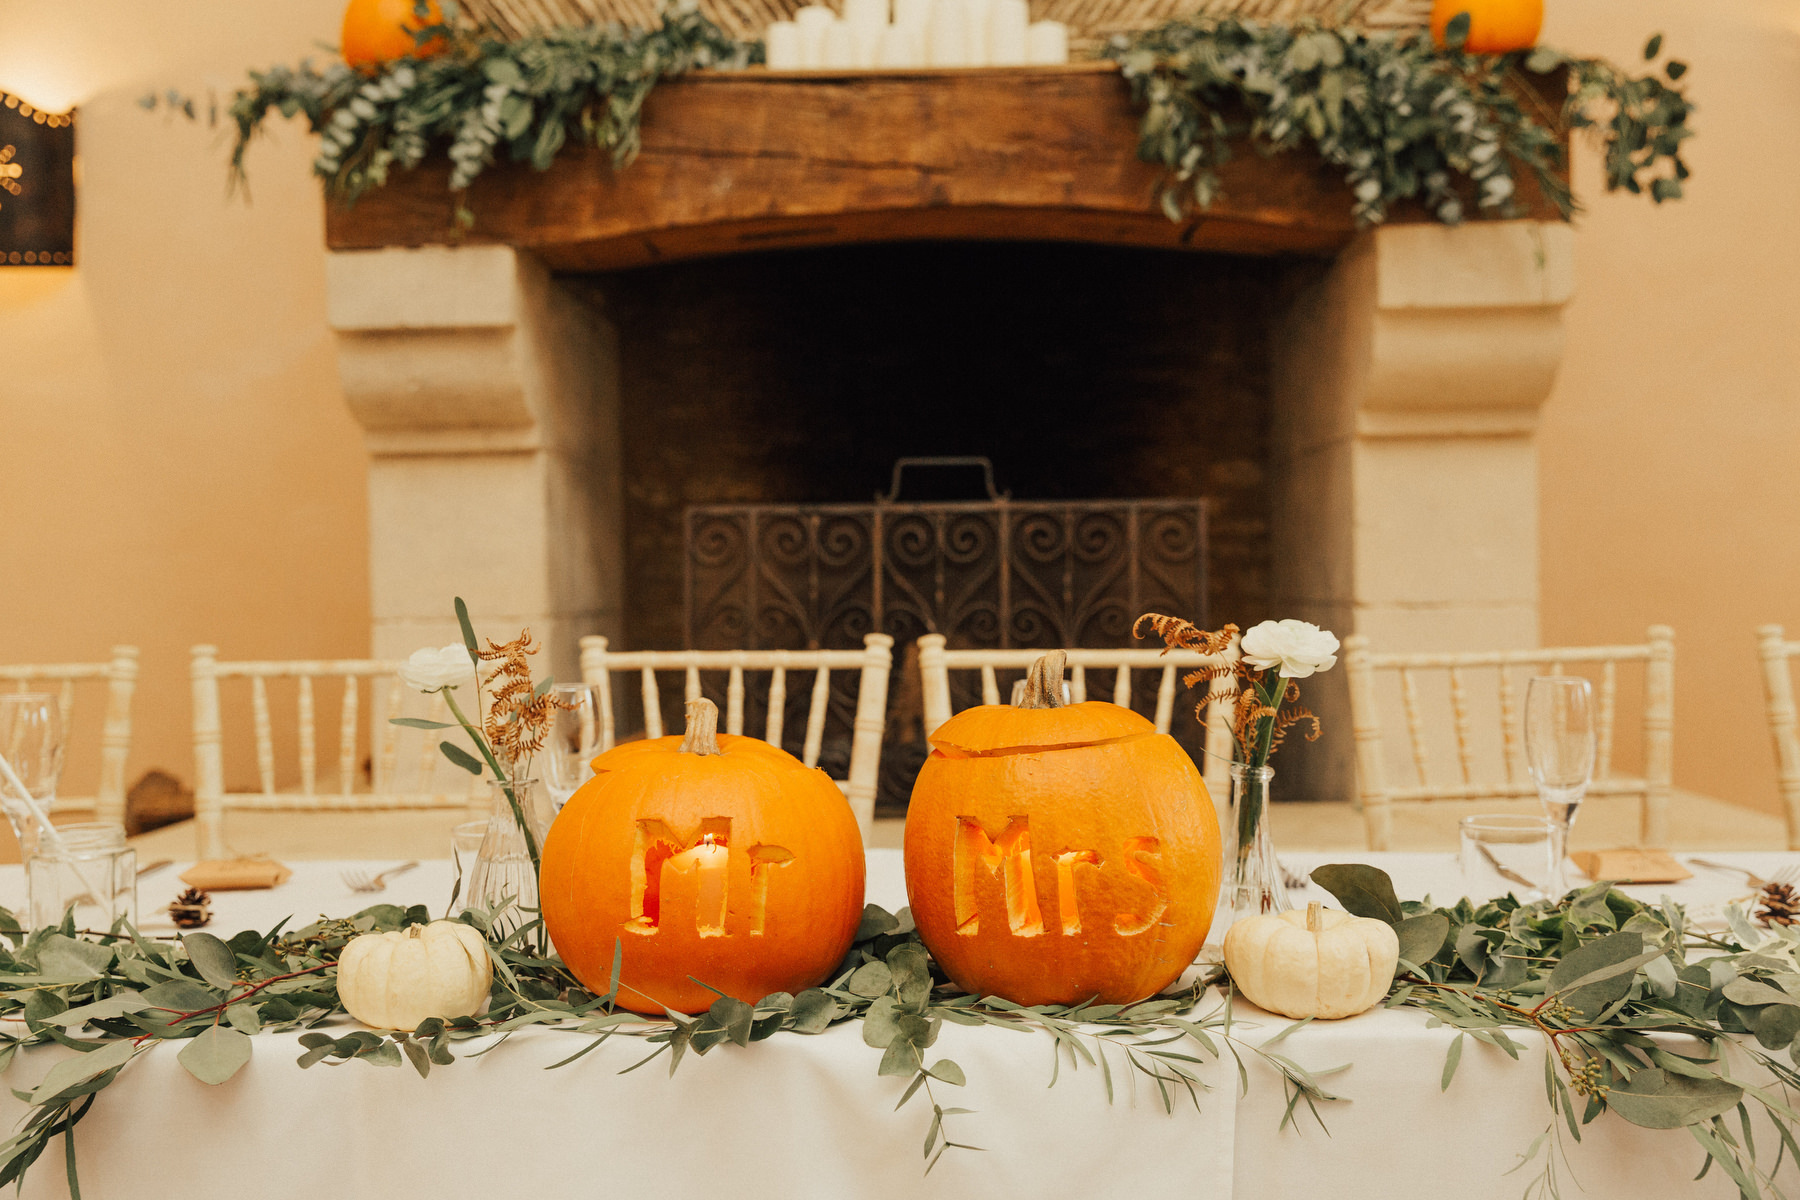 The reception table was decorated with pumpkins in orange and white, carved ones and greenery